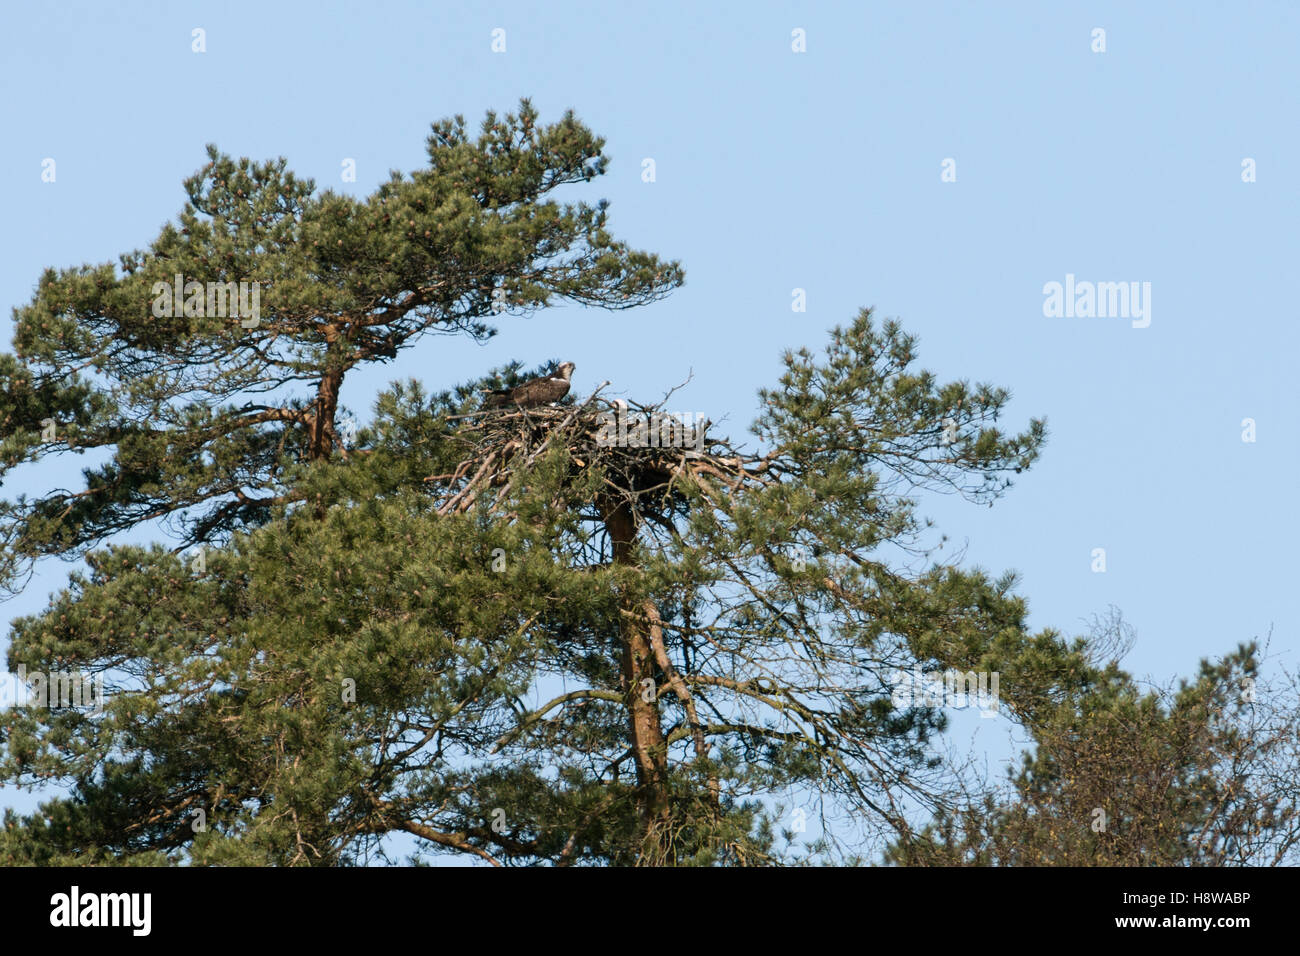 Western Osprey / Fischadler ( Pandion haliaetus ), pair, breeding, nesting high up in a pine tree, together on their - Stock Image